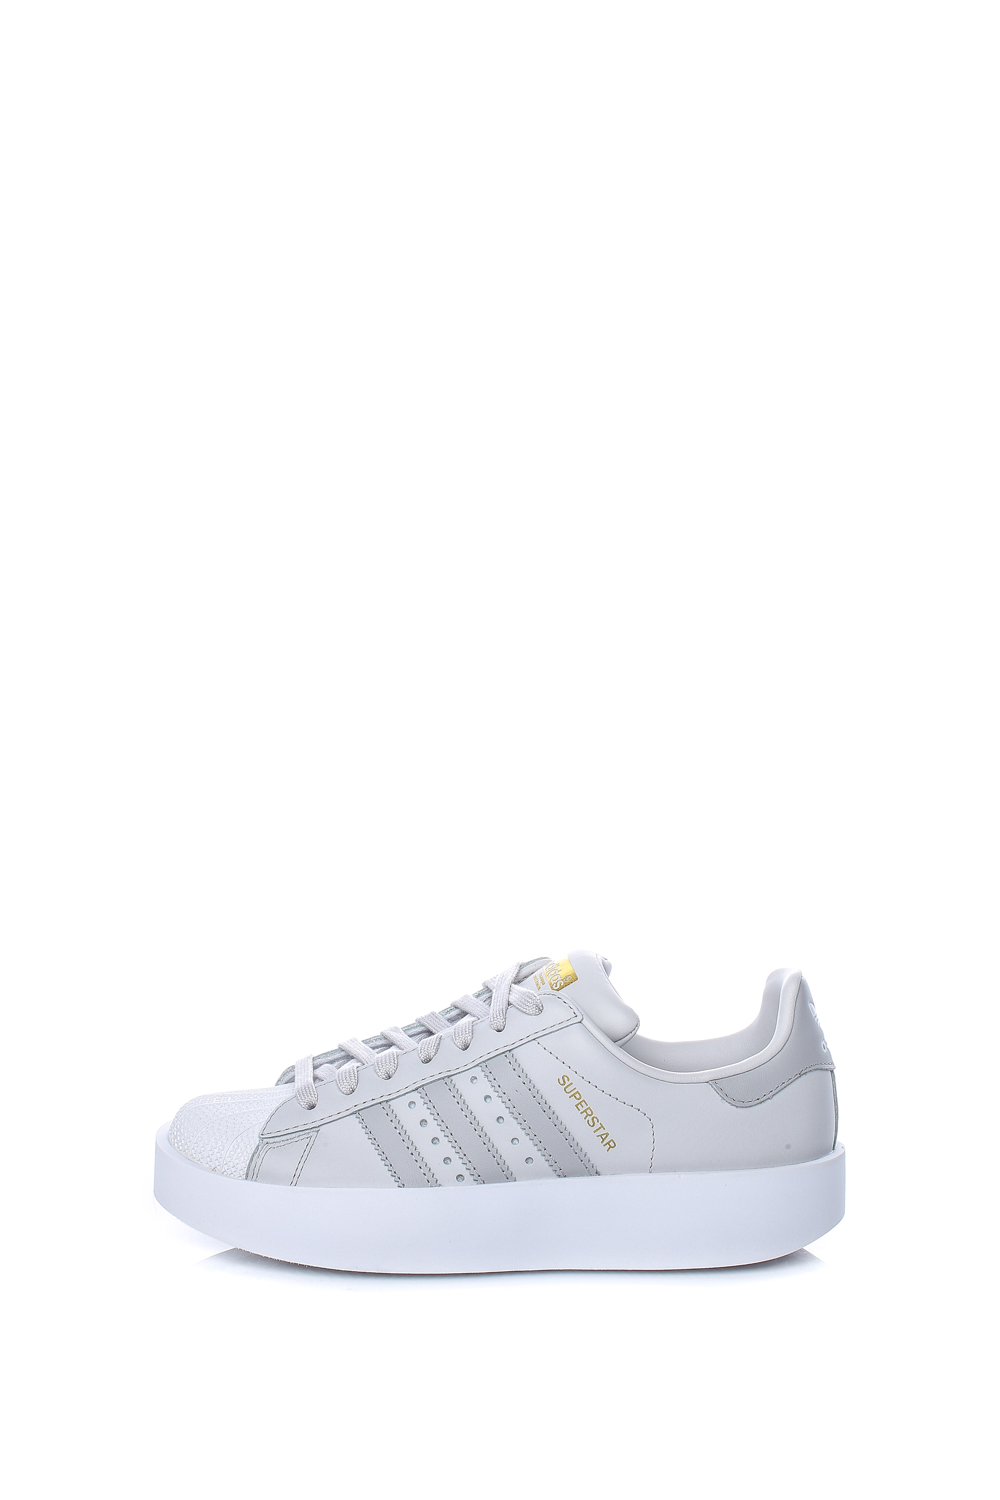 adidas Originals – Γυναικεία sneakers SUPERSTAR BOLD γκρι